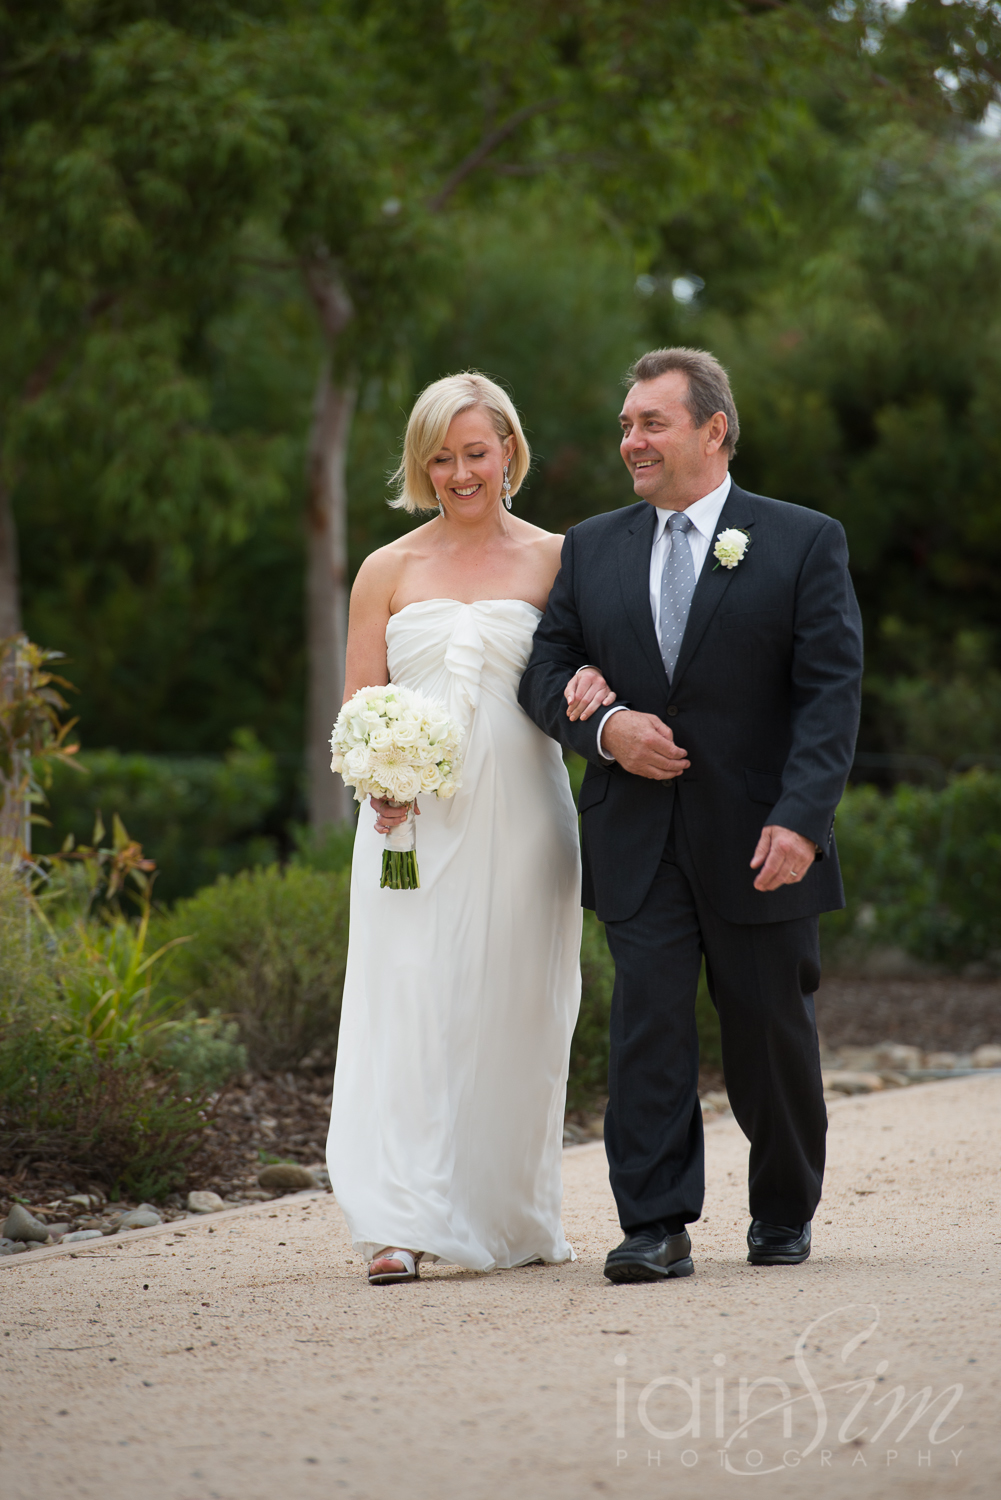 wpid-Bianca-and-Ben-at-Cranbourne-Botanic-Gardnes-by-Iain-Sim-Photography_010.jpg